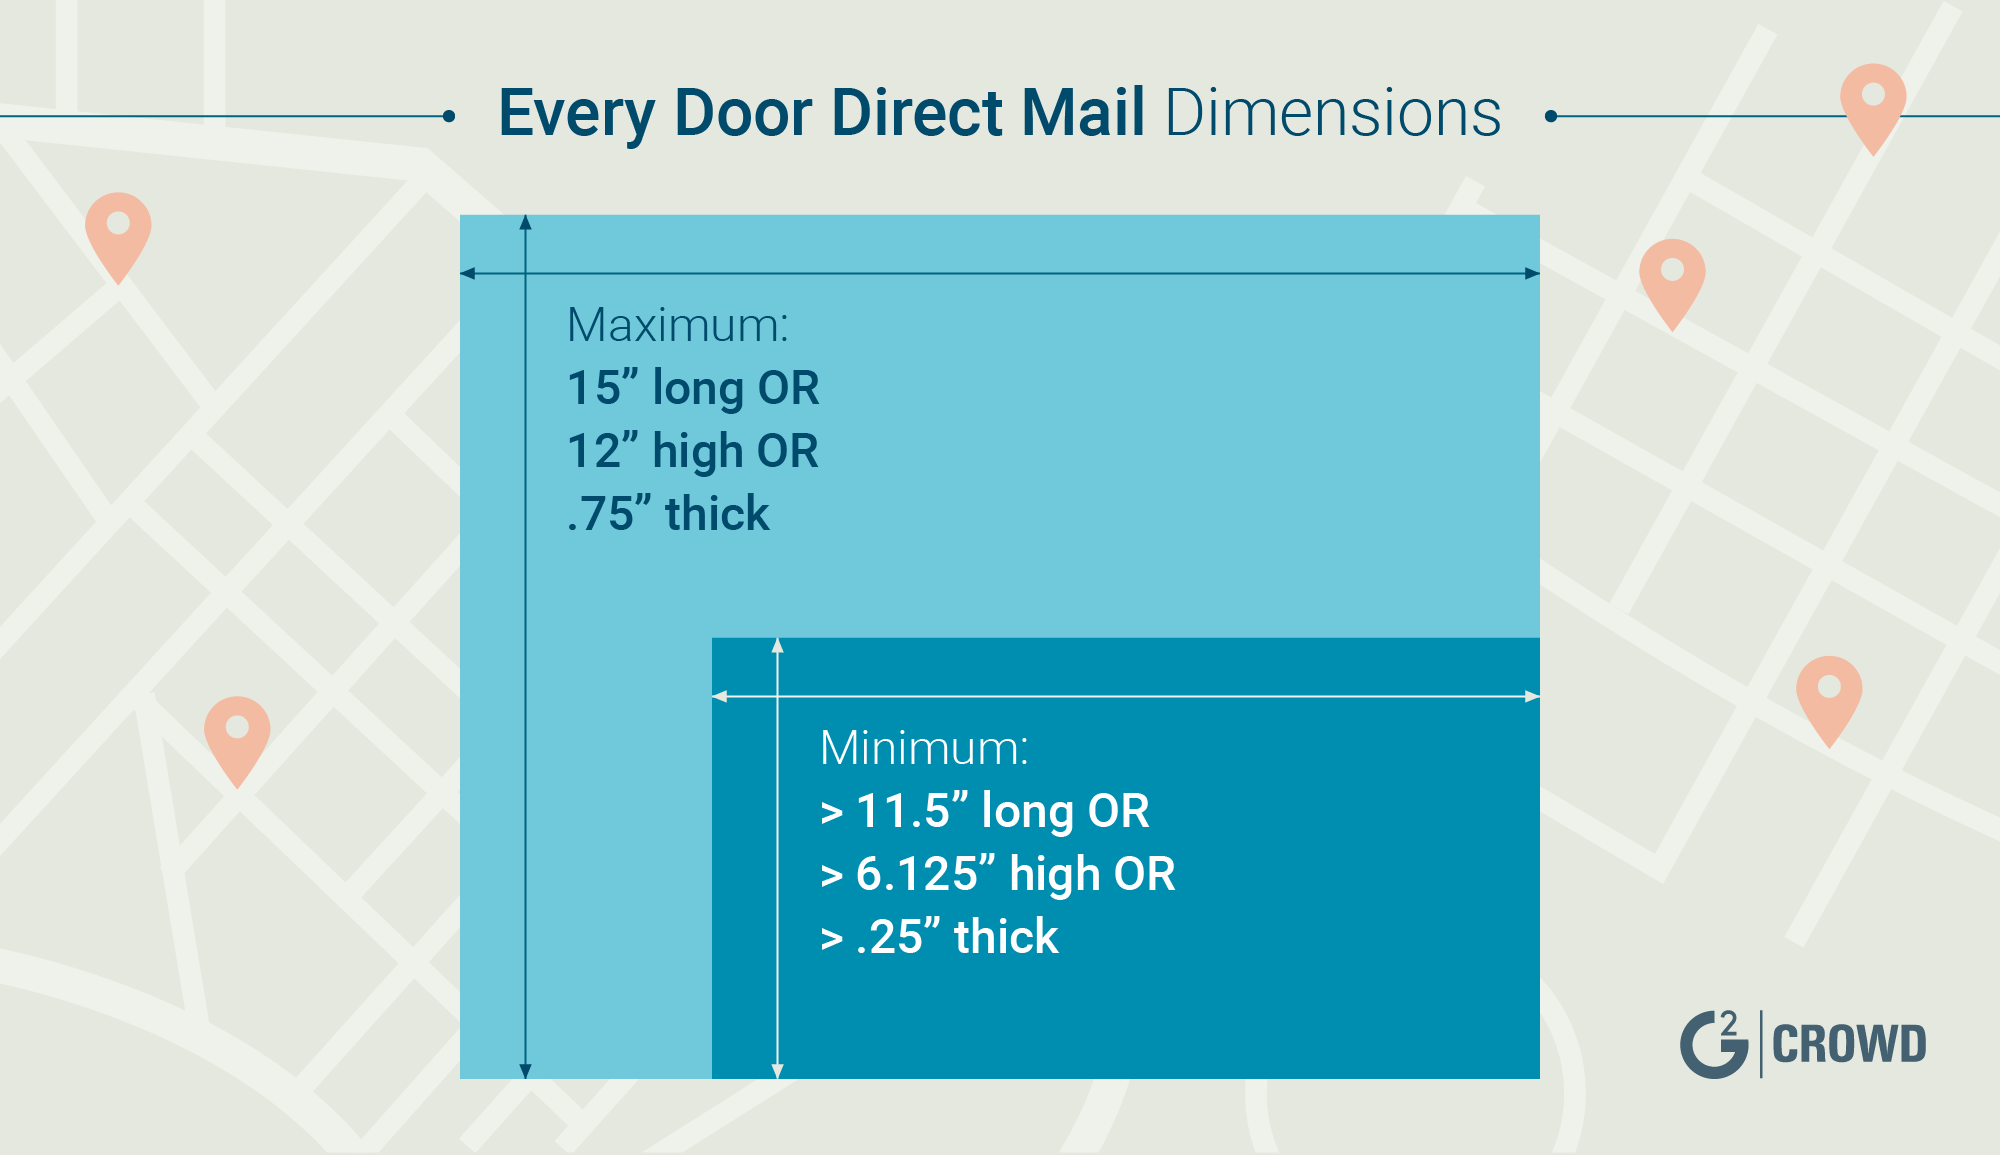 Every Door Direct Mail Sizes